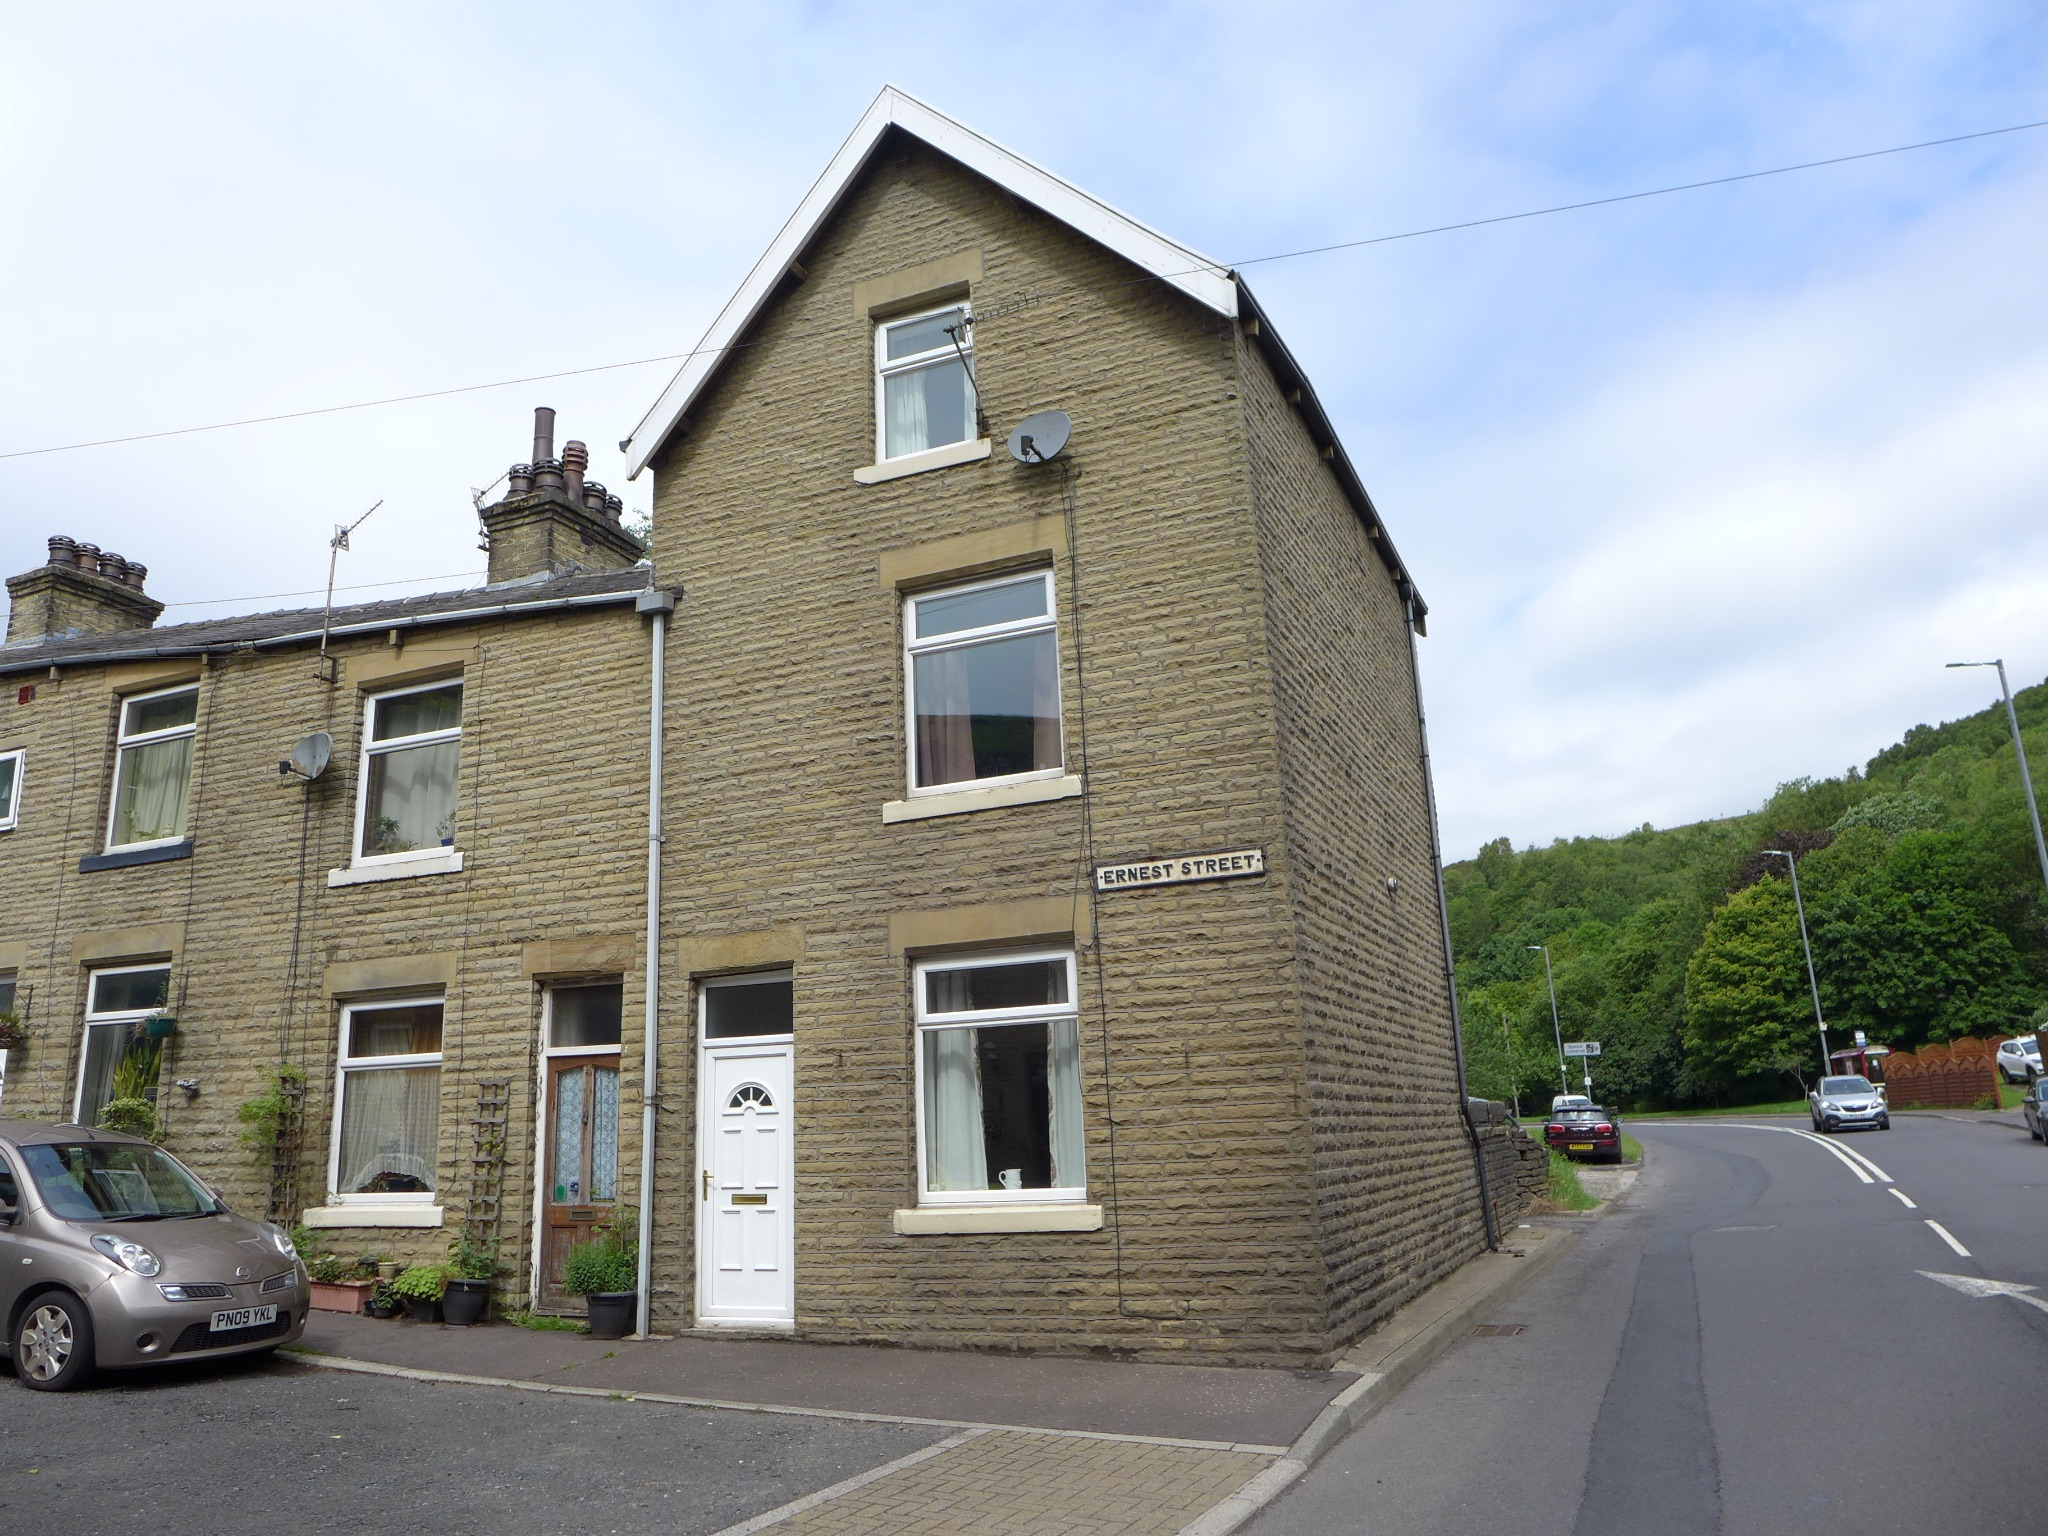 3 bedroom end terraced house For Sale in Todmorden - Property photograph.